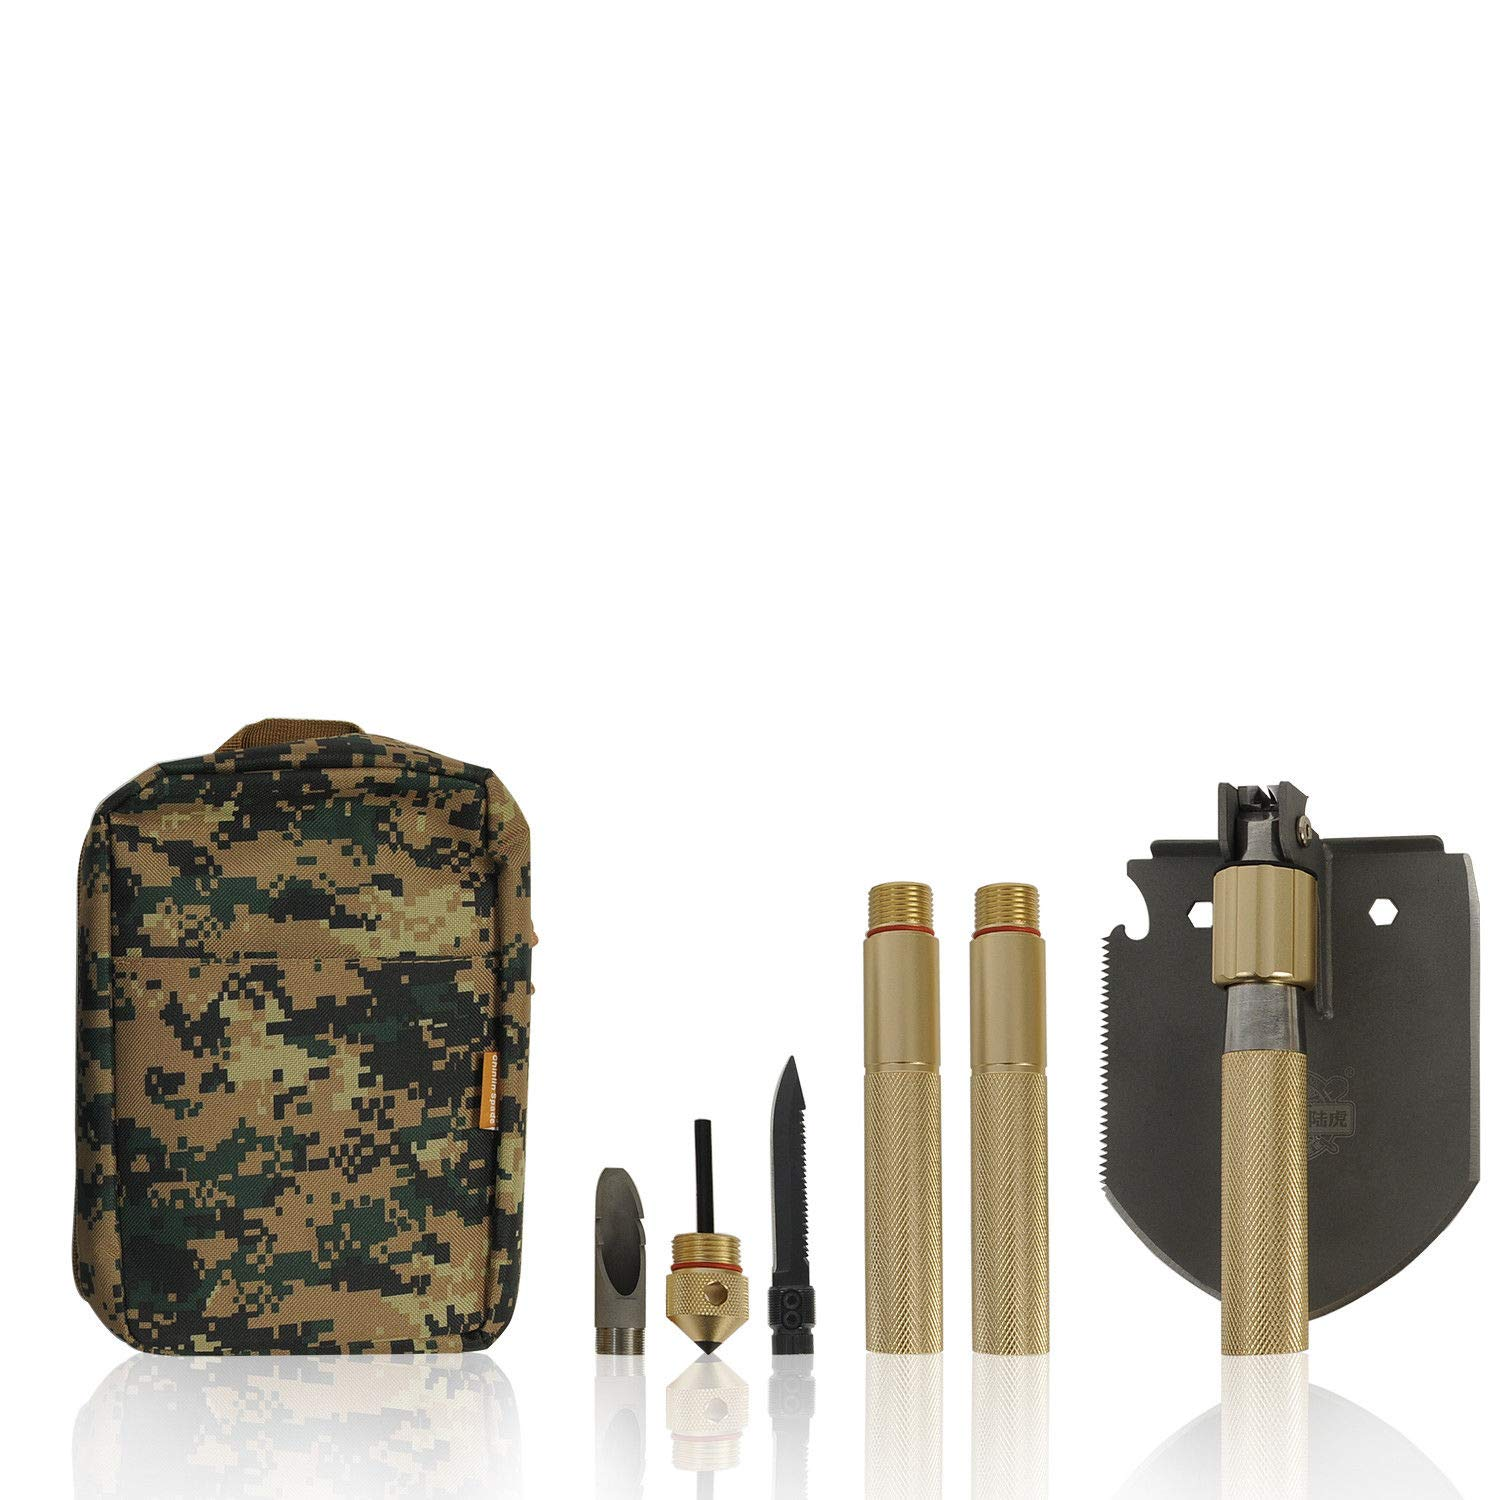 EAG Military Folding Shovel - Multi Purpose Tool Golden Stainless Steel Shovel for Camping Hiking Gardening - with Carrying Pouch